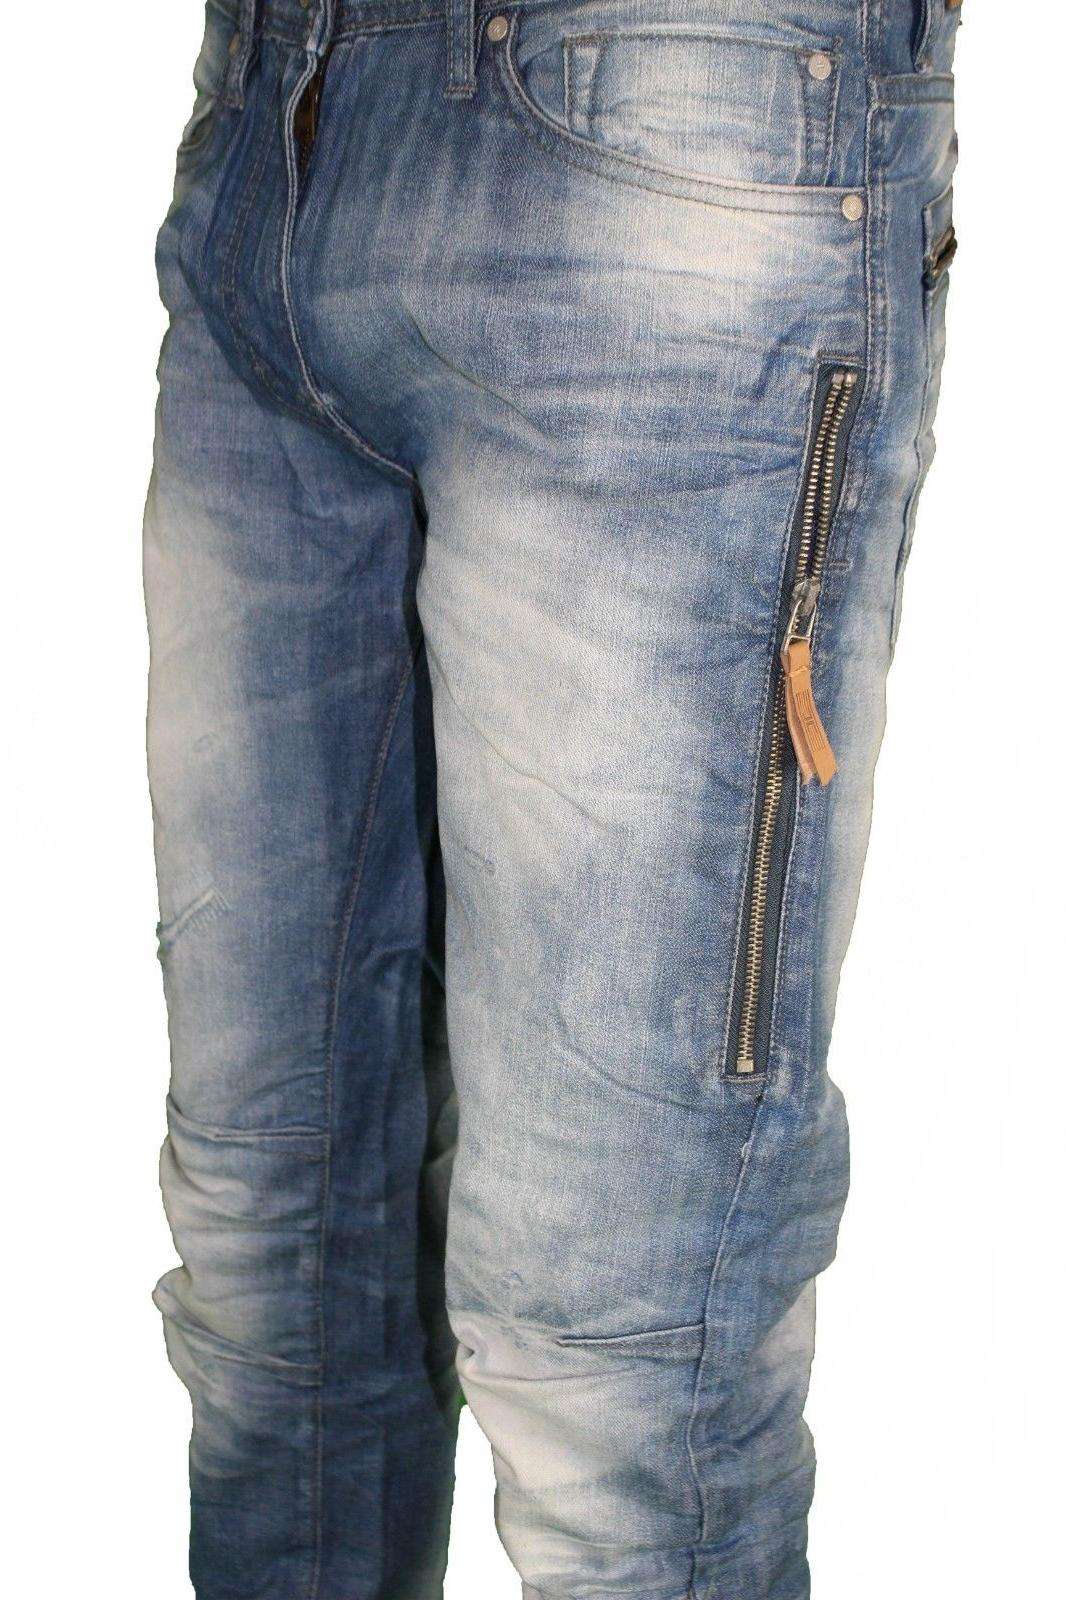 Men's Jeans Ripped Zippers SLIM 30-44